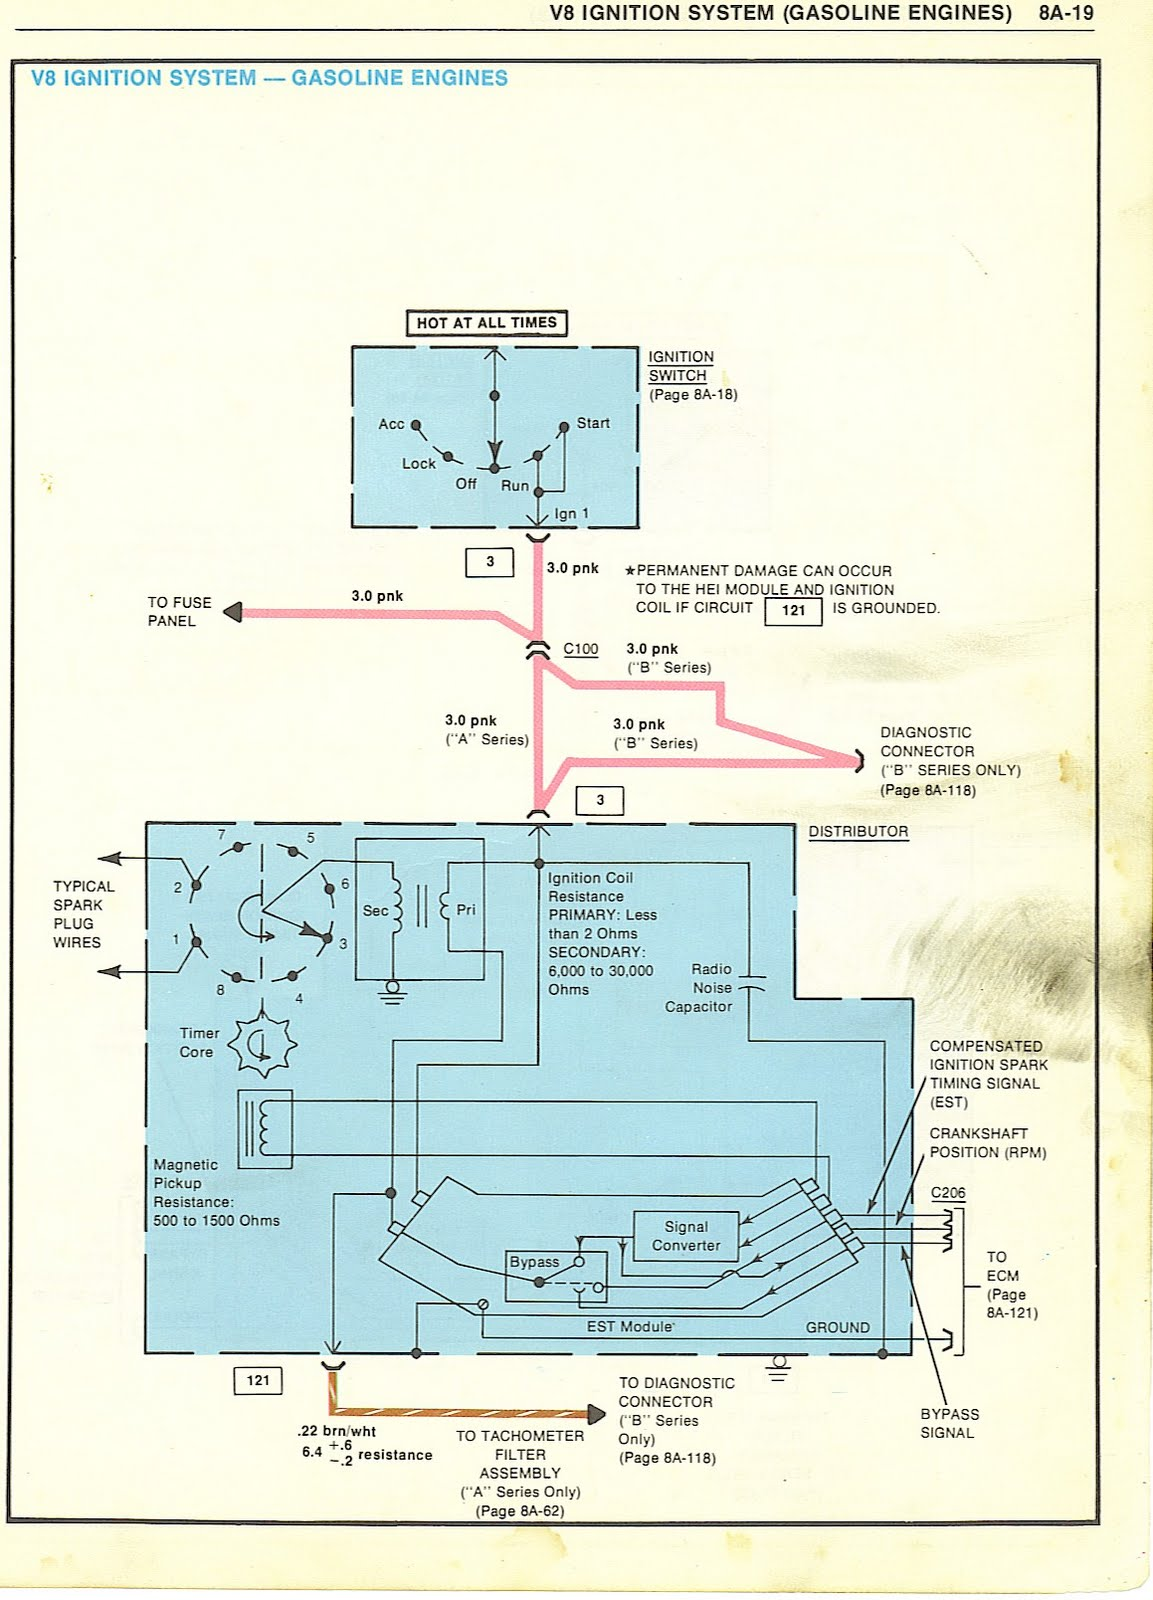 1987 Toyota Pickup Fuse Box Diagram 87